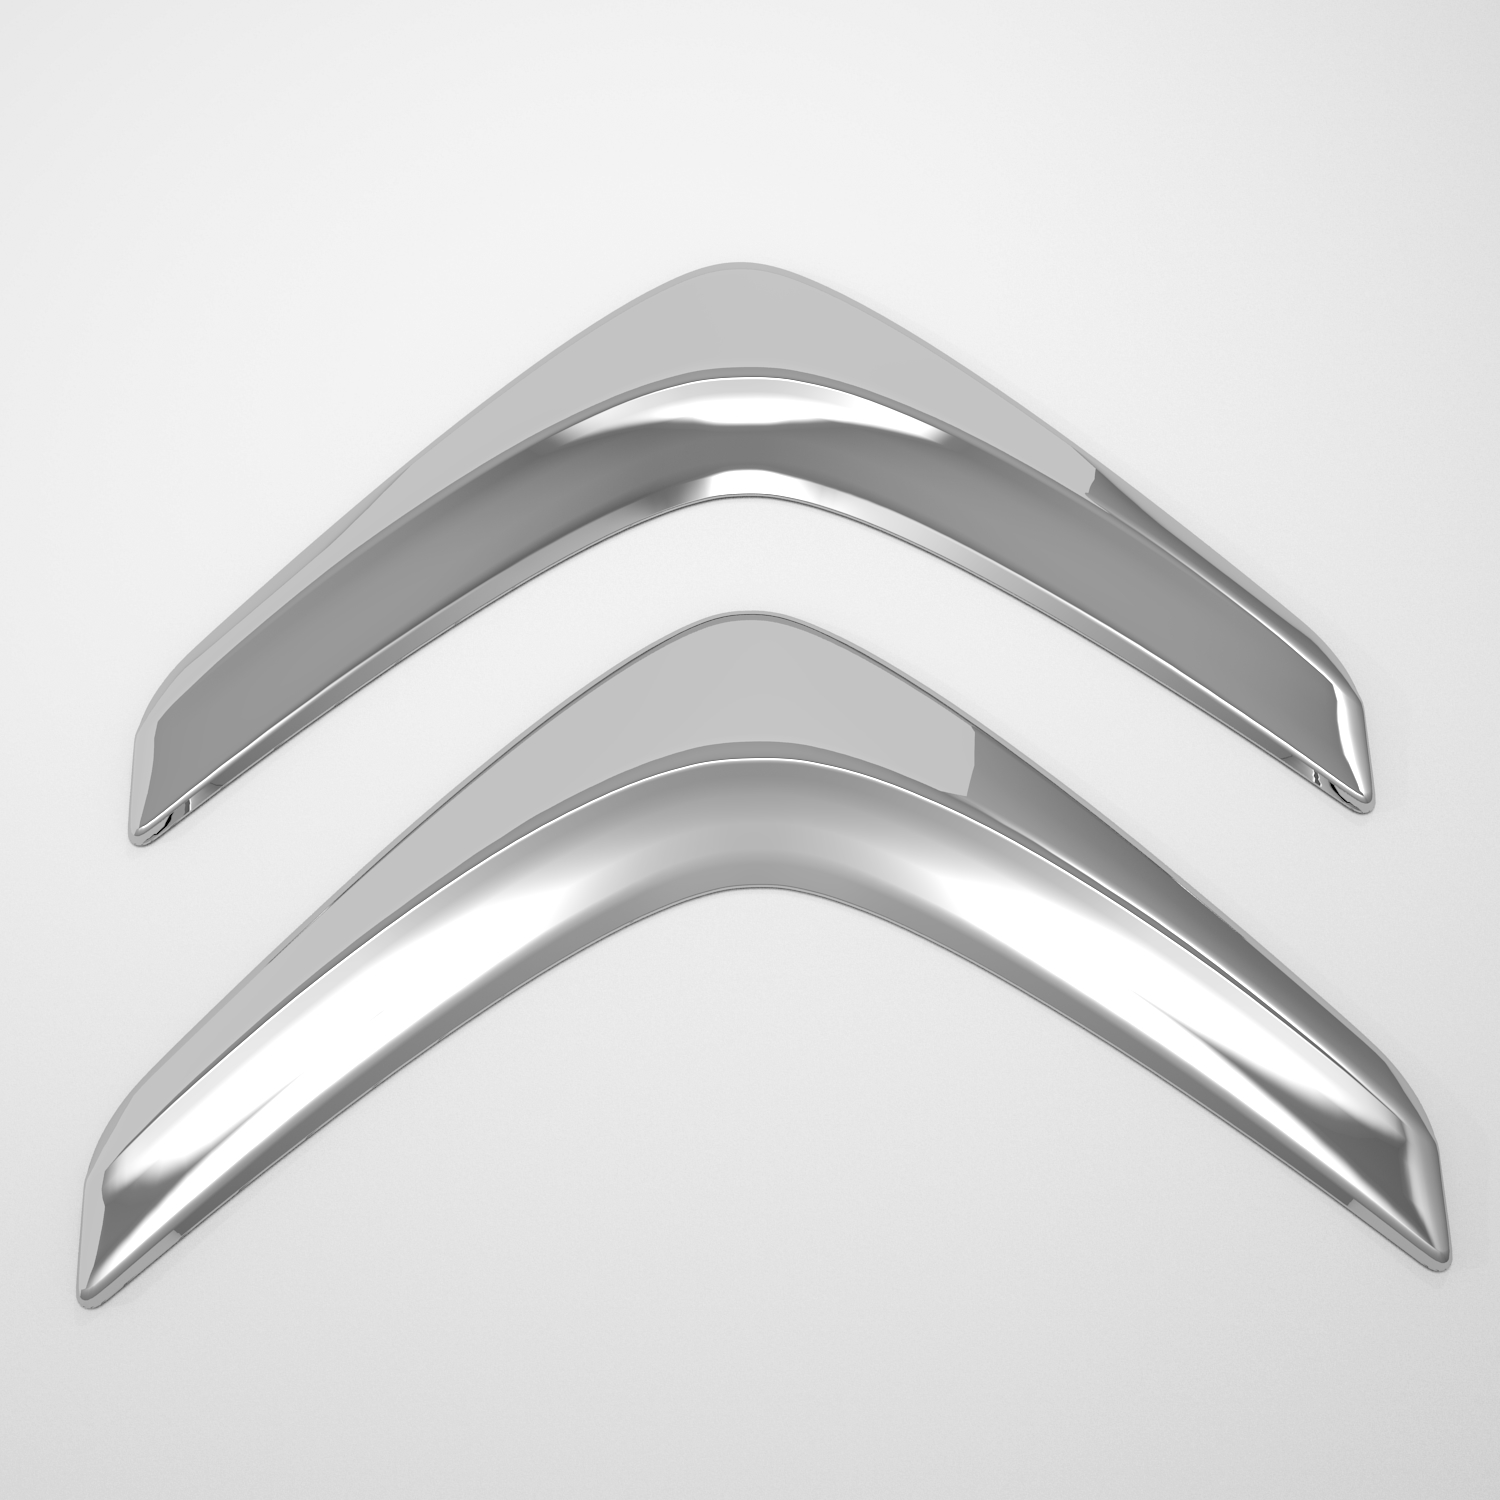 citroen logo 3d model blend obj 141297